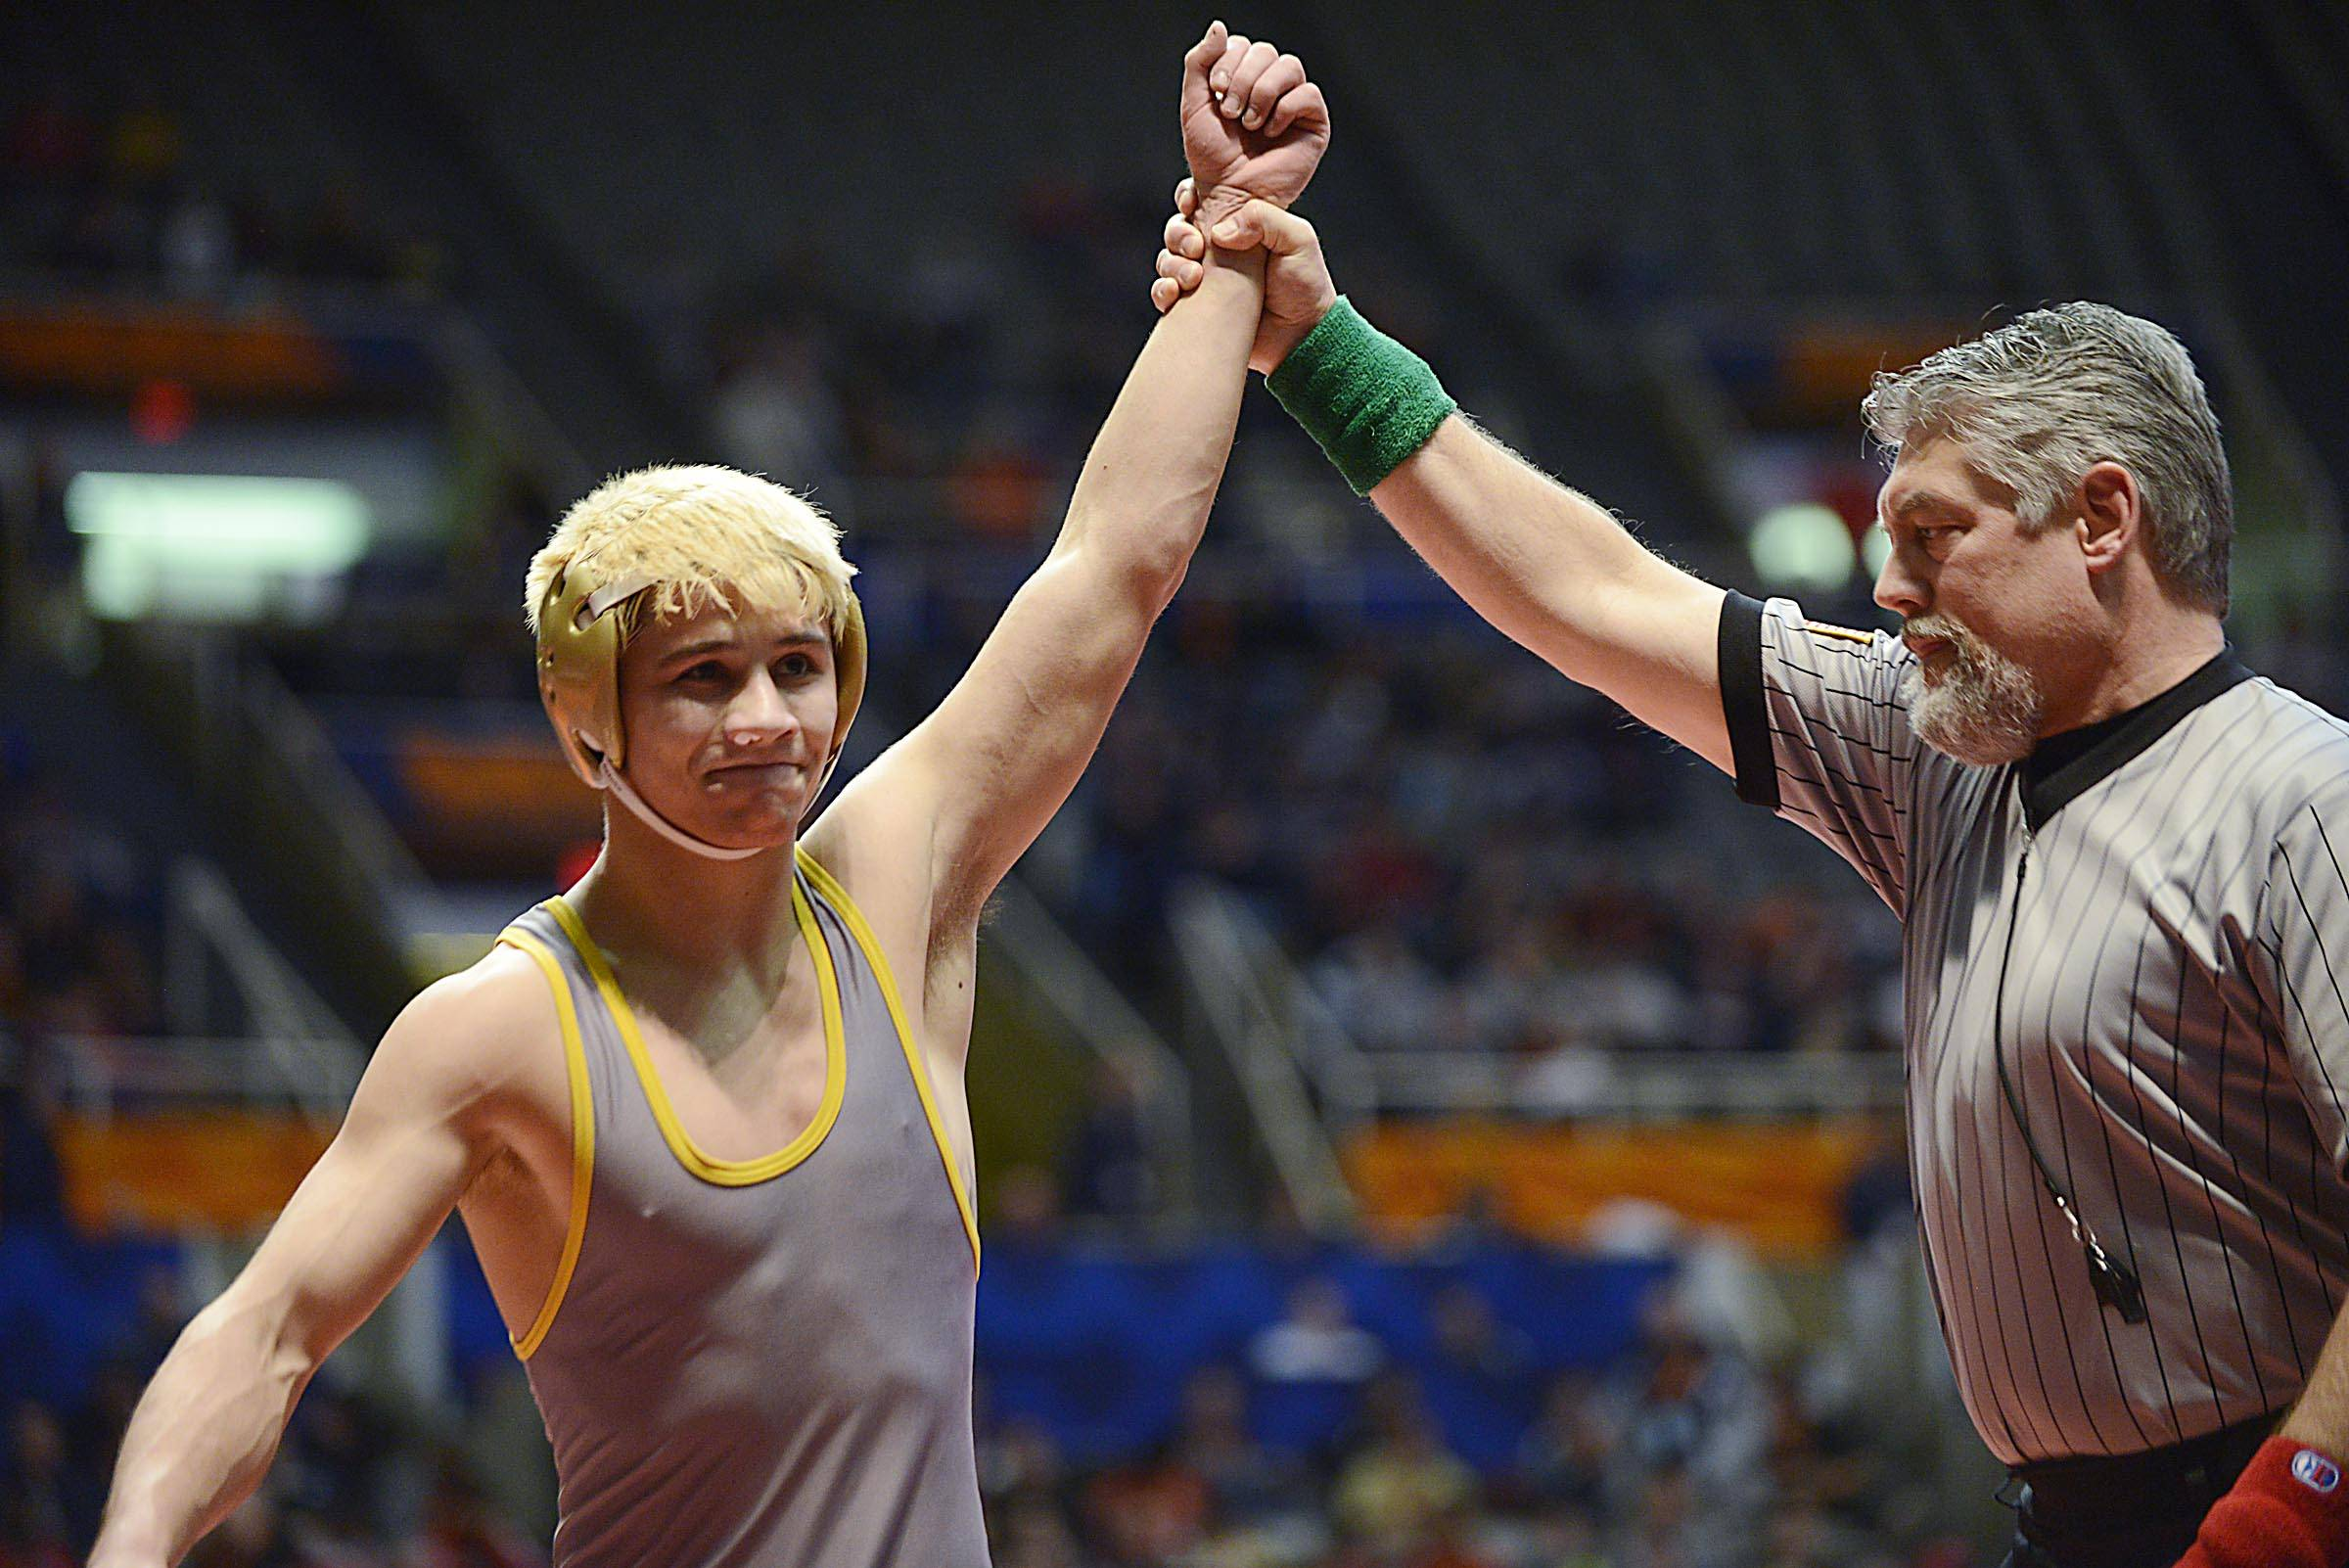 Jared Cortez of Glenbard North High School is declared the winner Friday in the 132-pound weight class semifinals of the wrestling IHSA Class 3A state tournament at State Farm Center in Champaign.